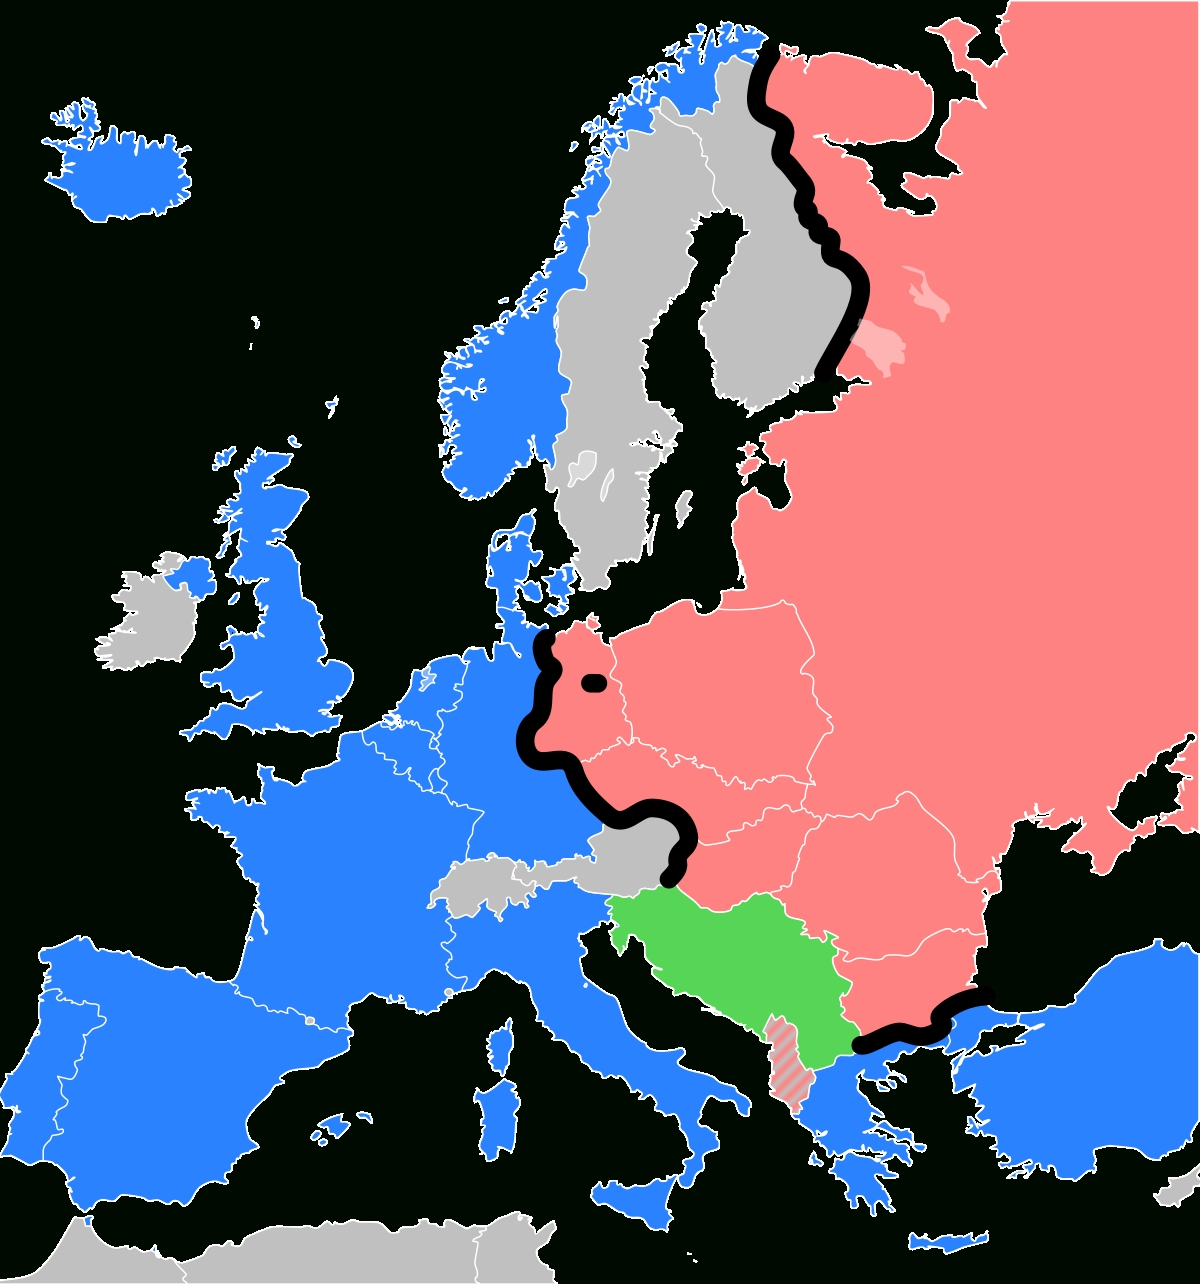 Iron Curtain - Wikipedia regarding Map Of Divided Germany During The Cold War